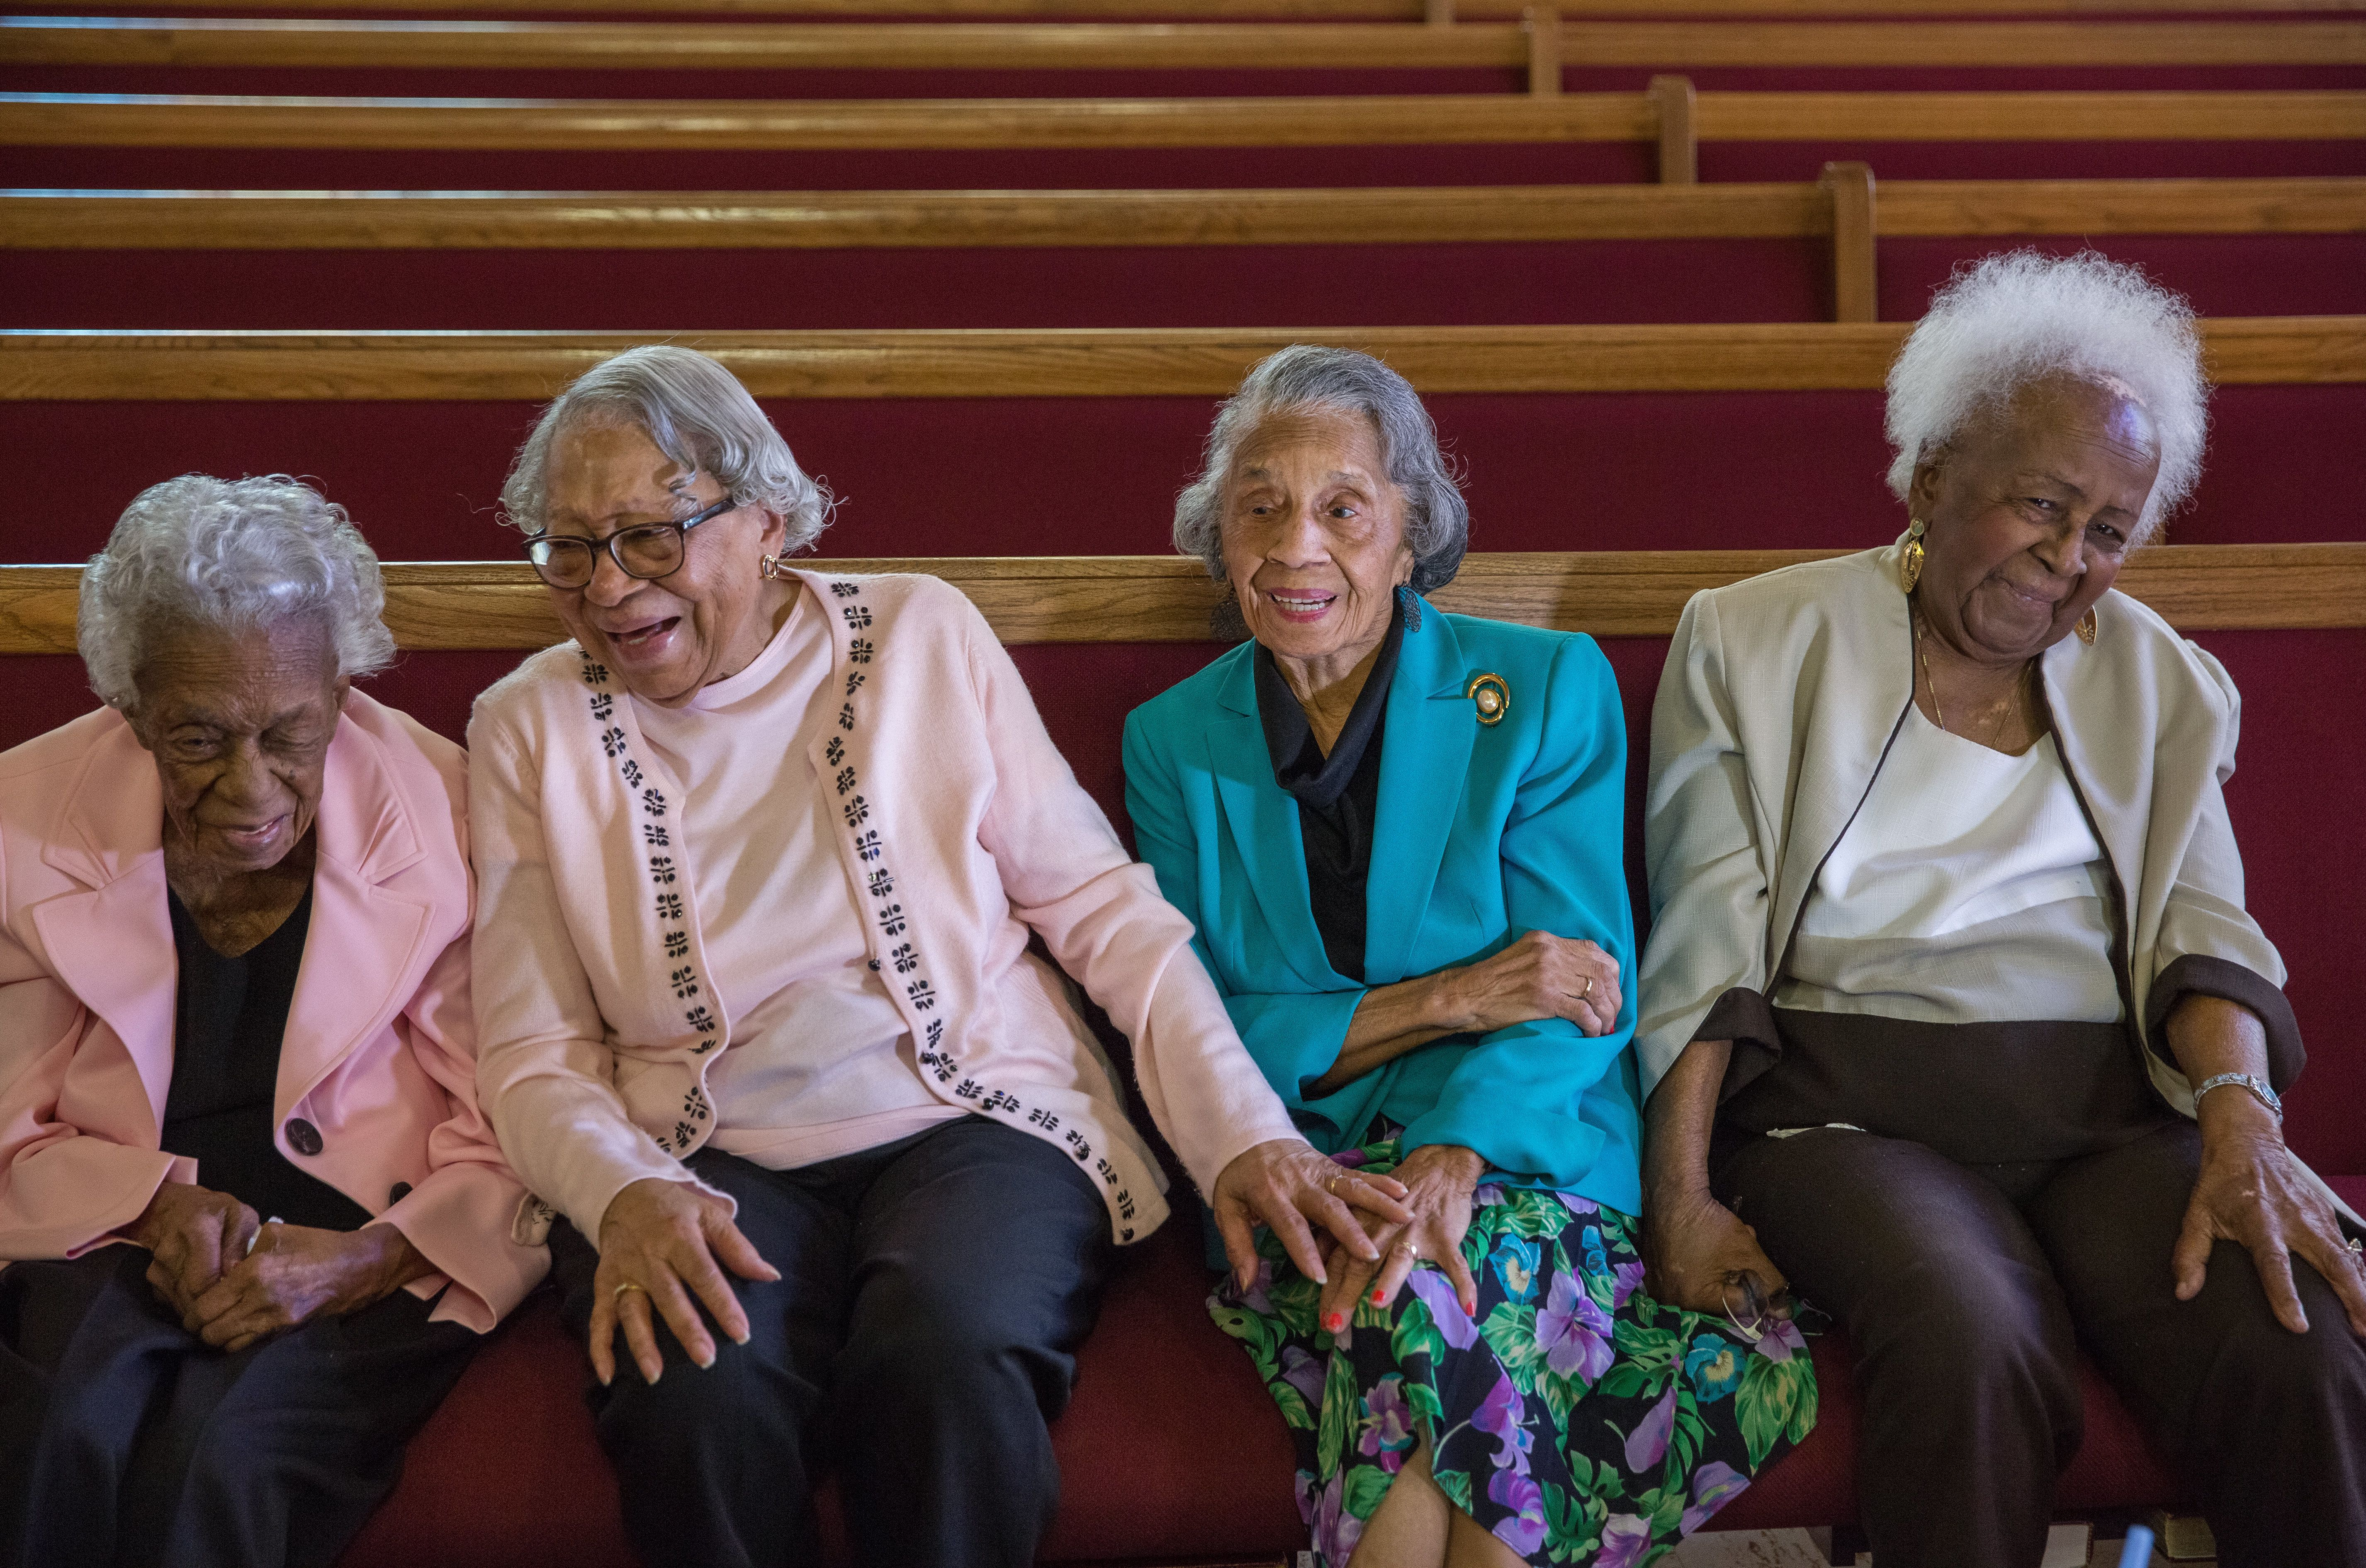 WASHINGTON, DC - MAR09:  (L-R) Ruth Hammett, Gladys Butler, Bernice Underwood, and Leona Barnes, who will all turn 100 this year, laugh as they reminisce during an interview, at Zion Baptist Church, March 9, 2016, in Washington, DC. These four women have been friends since they grew up together in southwest DC before the area was destroyed under eminent domain. (Photo by Evelyn Hockstein/For The Washington Post via Getty Images)